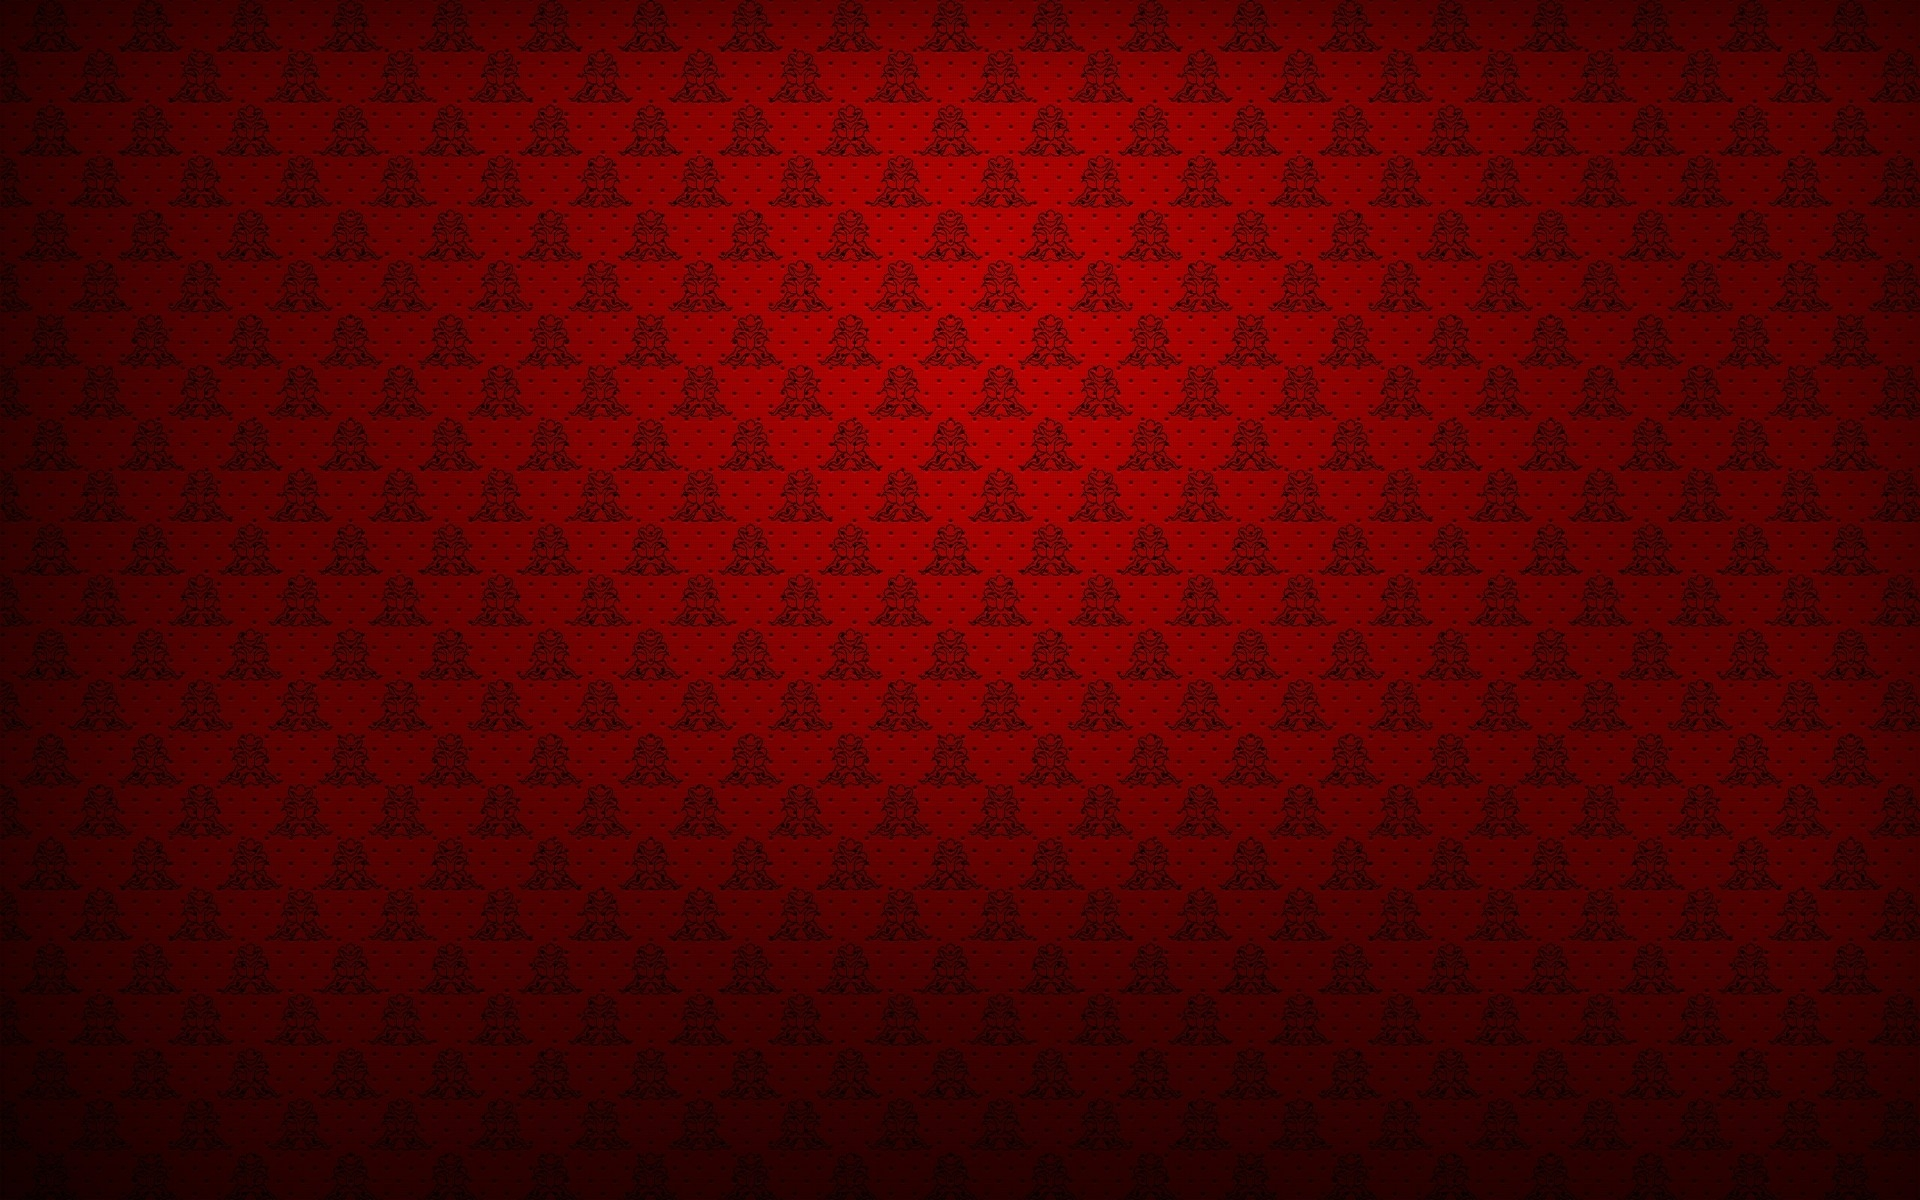 Best-new-background-patterns-Red-Patterns-1920-Red-Patterns-Background-Imageif-thr-wallpaper-wp3403189